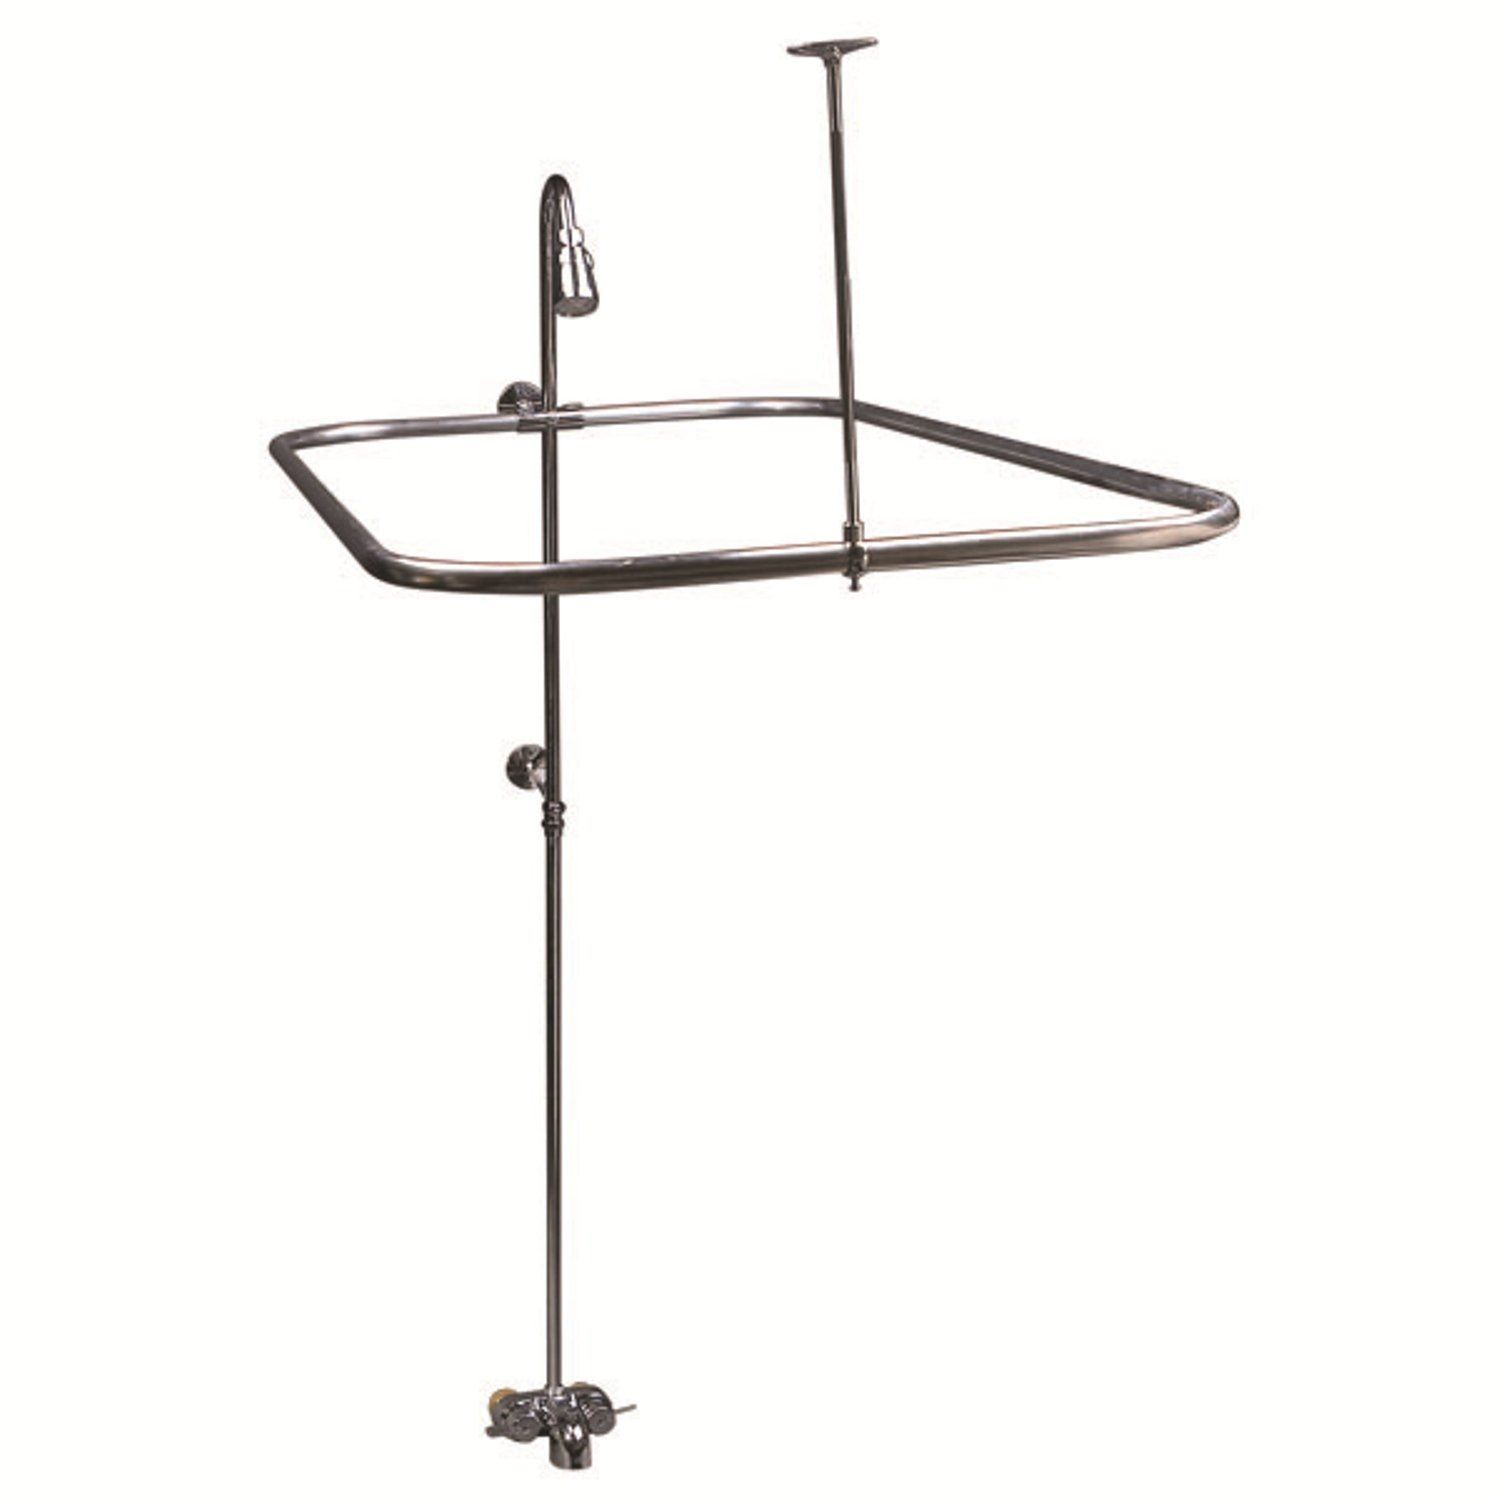 101 Amazon Com New Add On Shower For Clawfoot Tub Includes